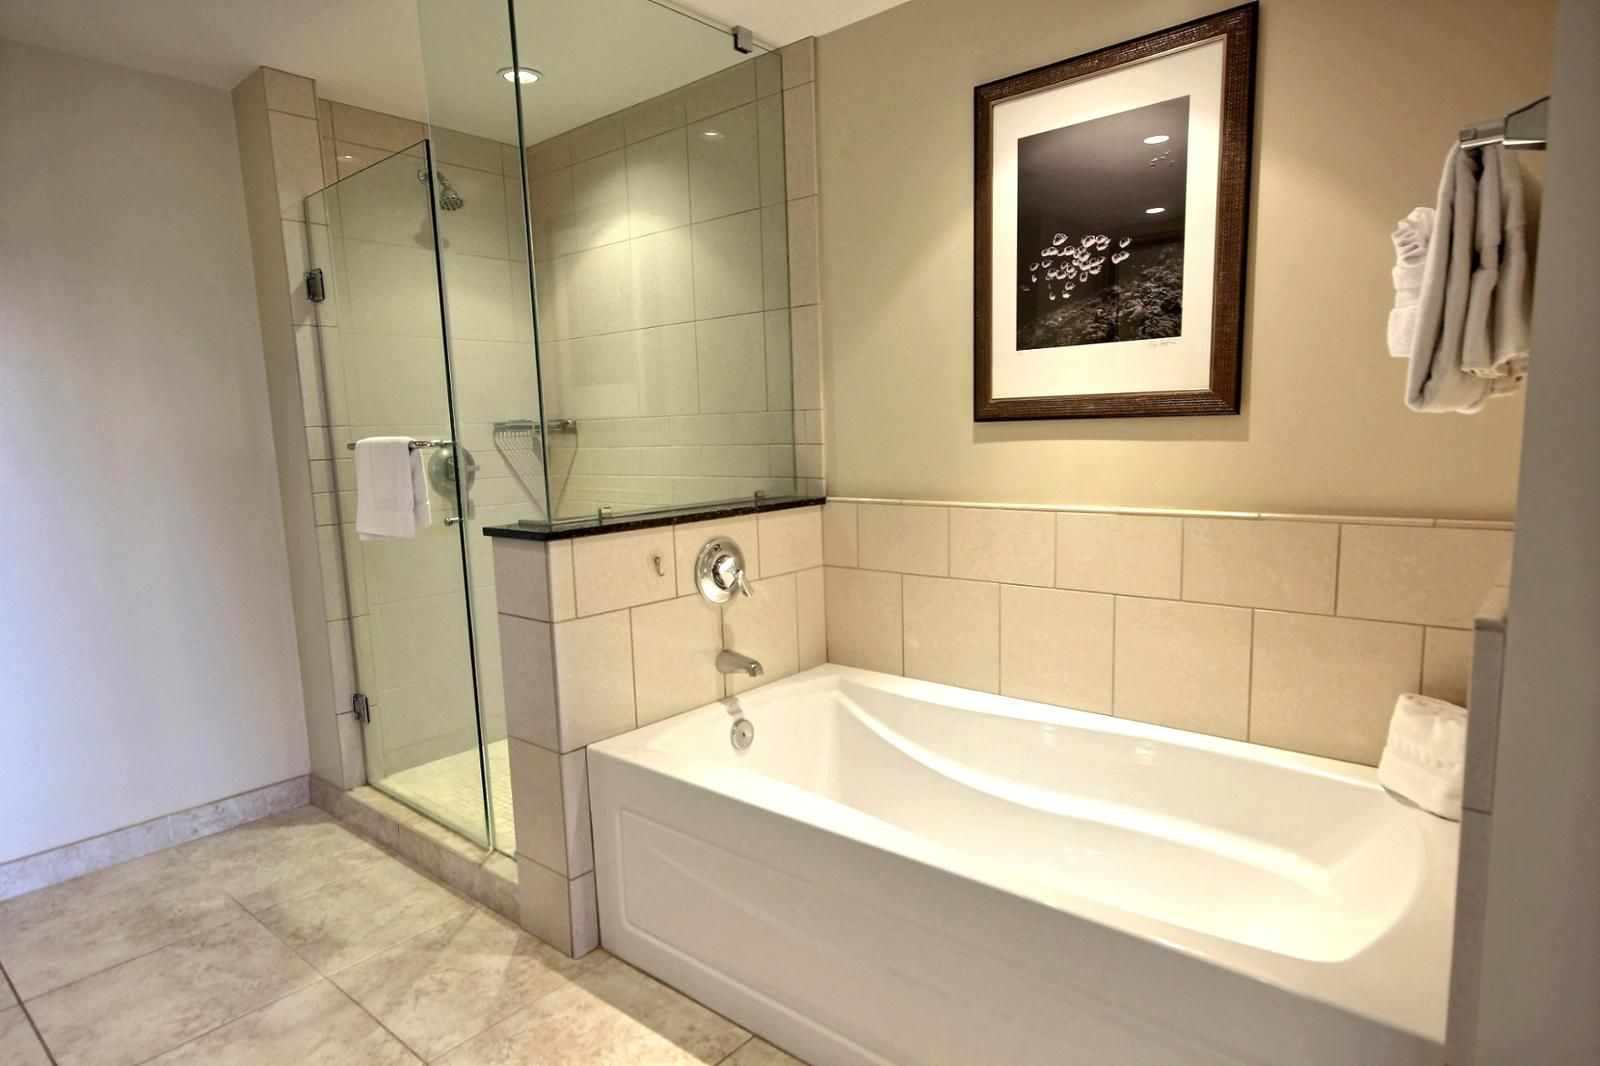 bath and separate shower - Google Search | Master bathroom ...